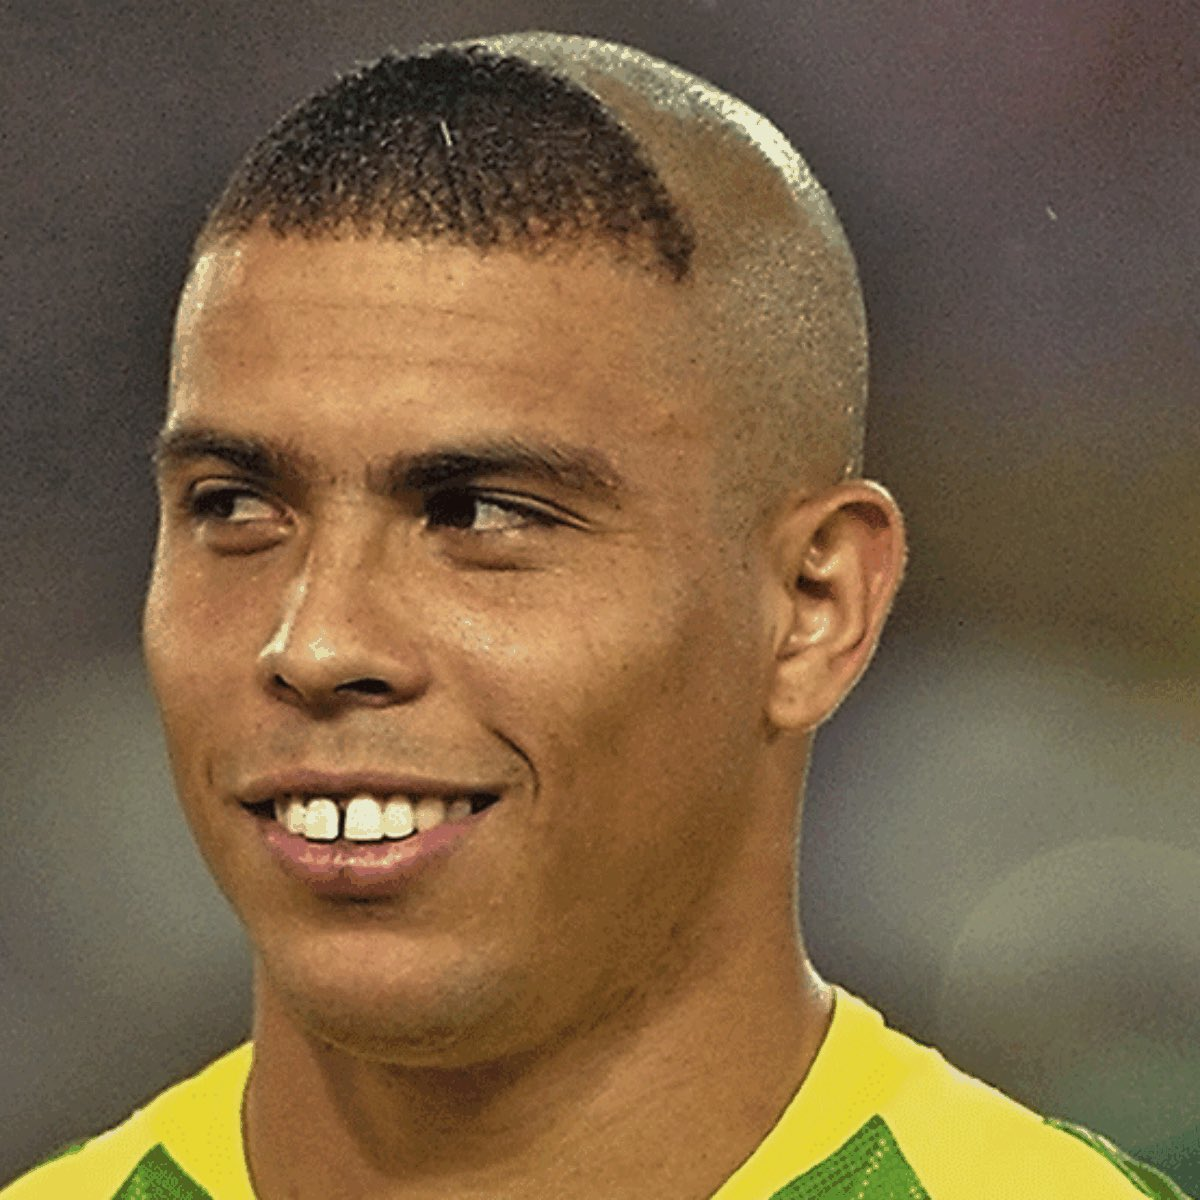 1k likes AND If Brazil win the World Cup and I'll get Ronaldo (Brazil) haircut. If u don't know what it looks like... here ya gopic.twitter.com/NCvLlFfoVf